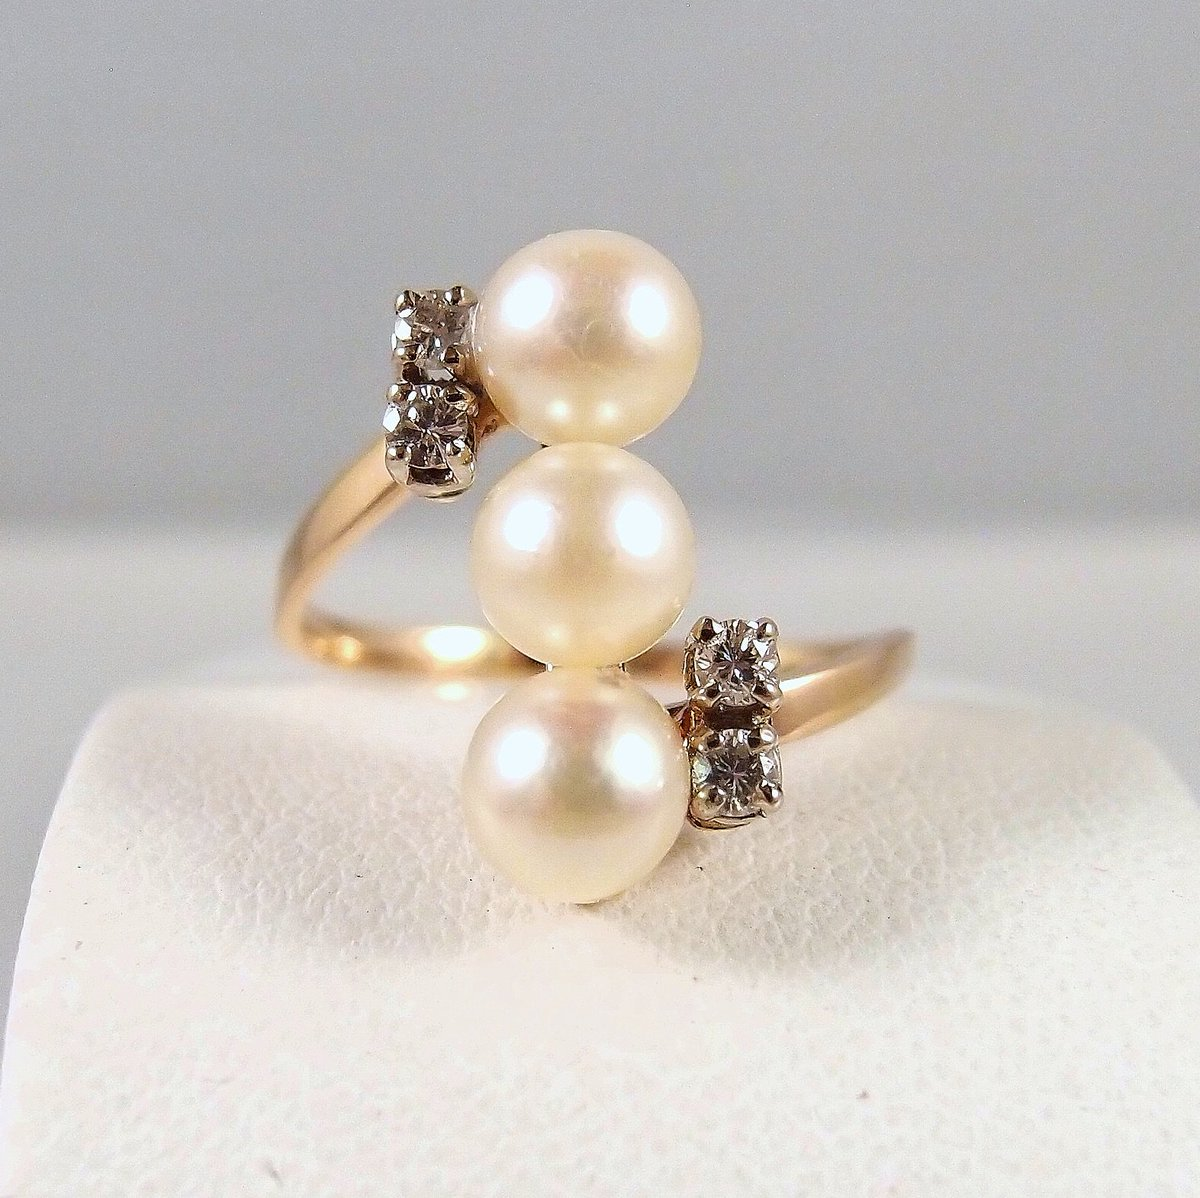 The eternal beauty of pearls #pearlsofinstagram Three gorgeous #Japanesepearlsring with 4 #naturaldiamonds on #18Ksolidgold Stamped http://bit.ly/2tQ6WYR  via @rubylanepic.twitter.com/e2chYuBF39